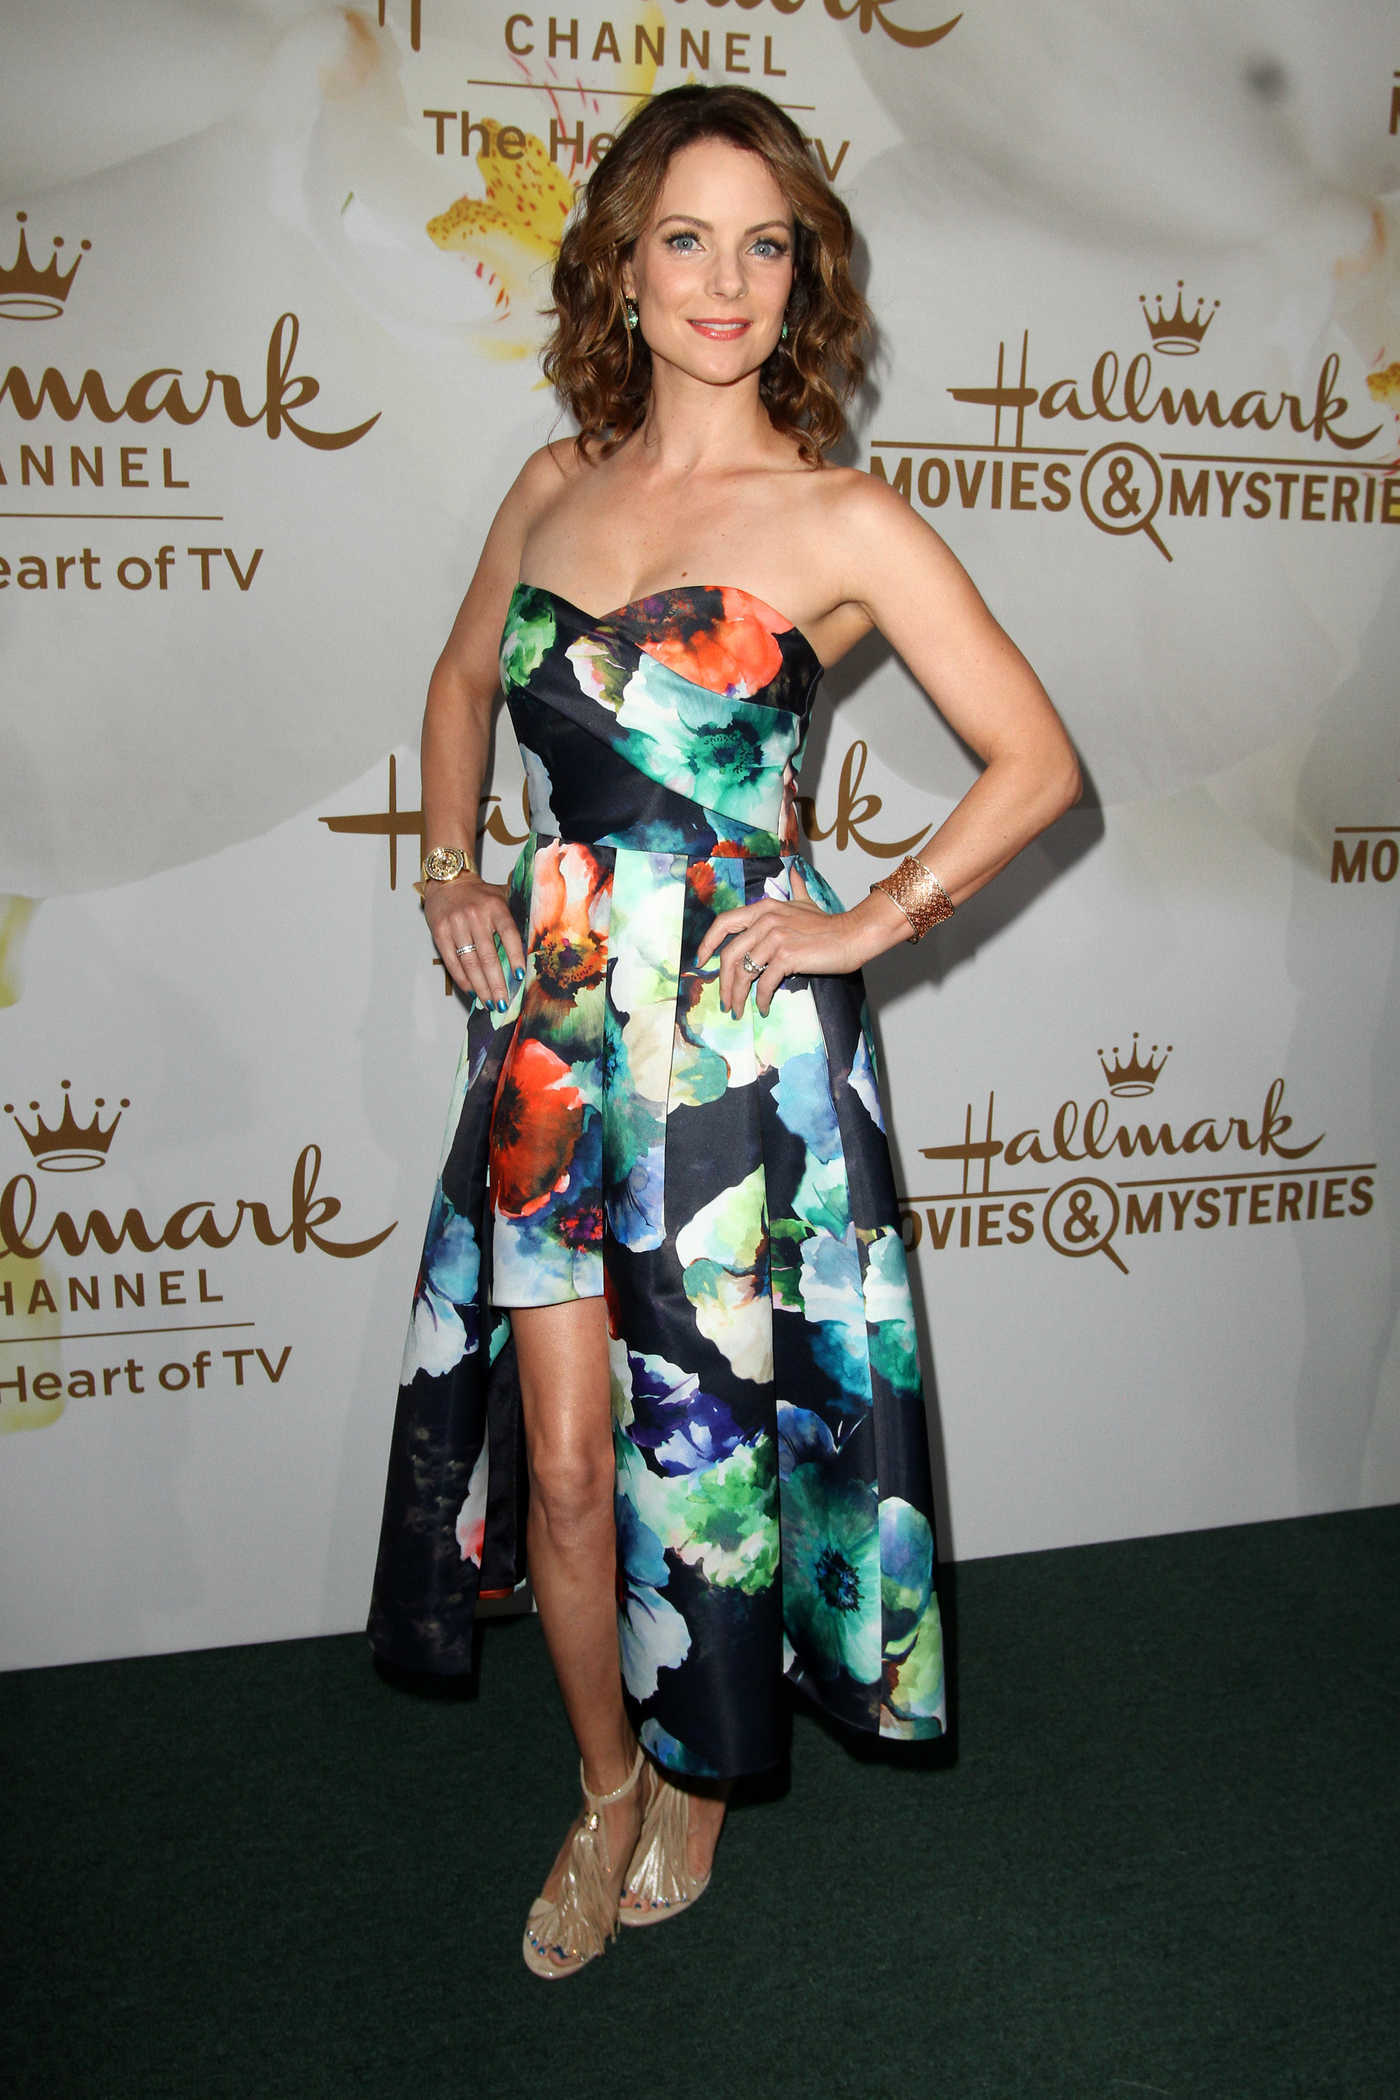 Kimberly Williams-Paisley at Hallmark Evening Event During the TCA Summer Press Tour in Los Angeles 07/27/2017